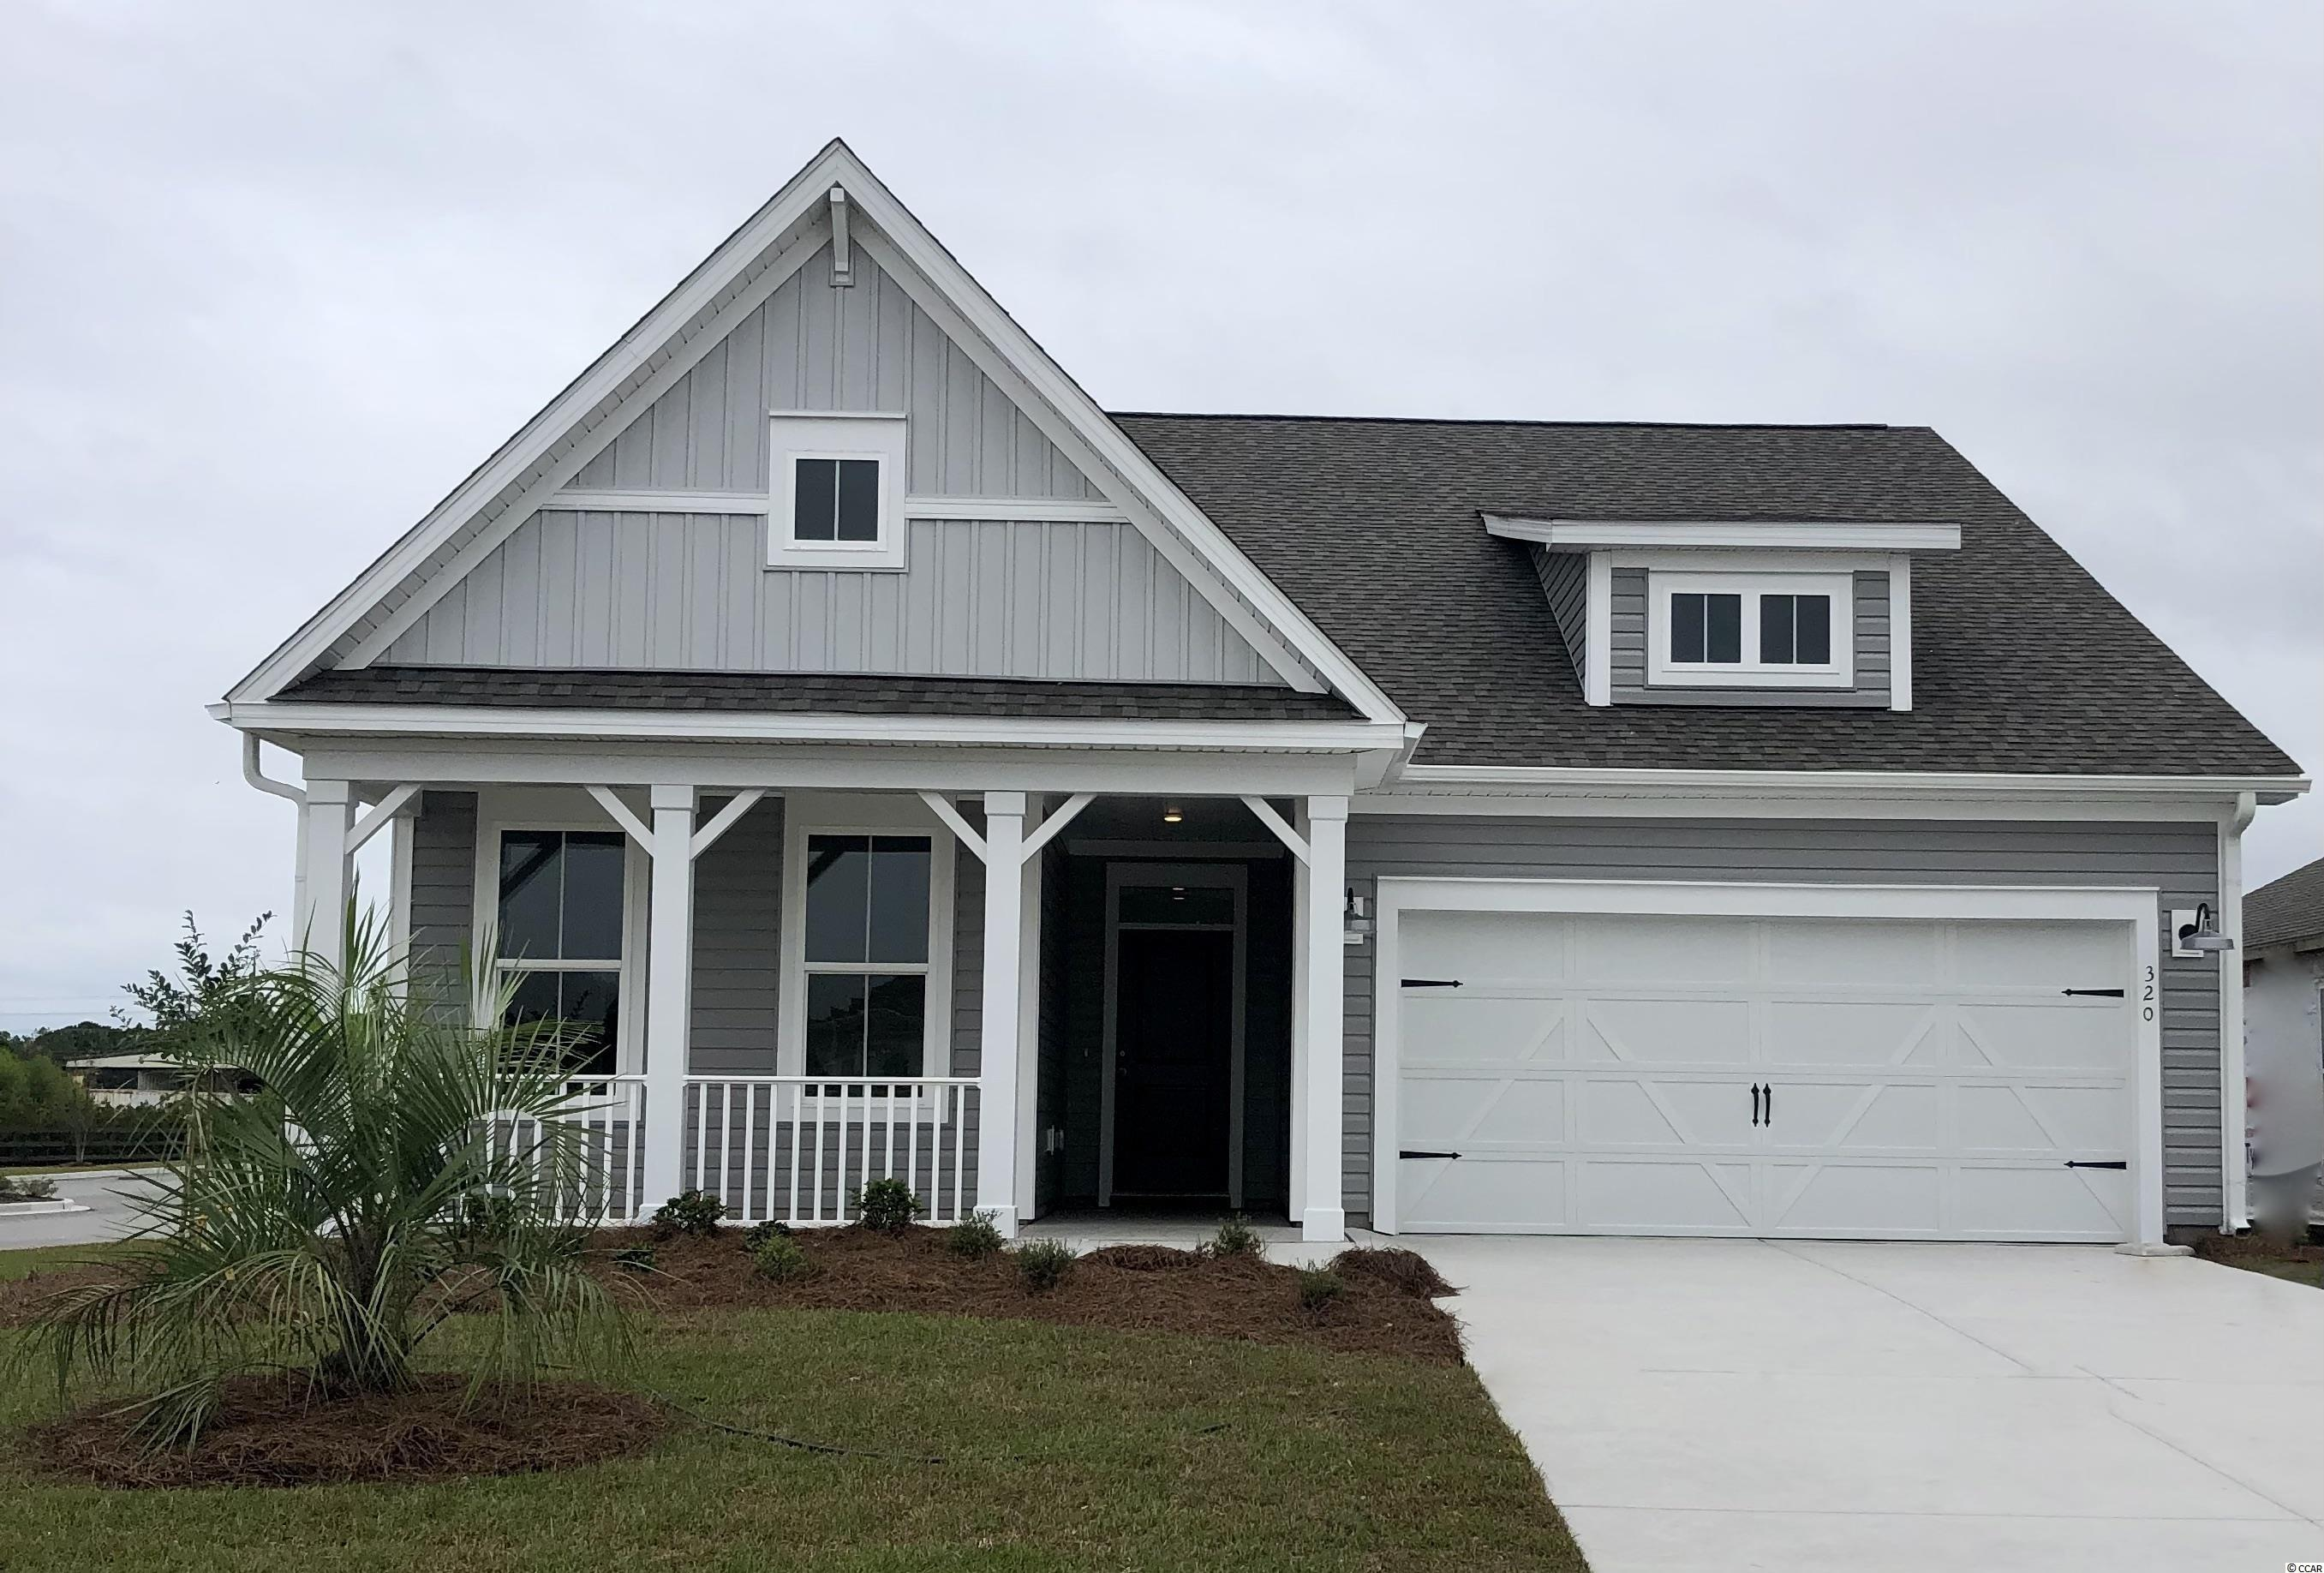 This 2-story home is the Live Oak floor plan that features 4 bedrooms, 3 full bathrooms and a dedicated loft (perfect for a home office, hobby room, or play room) carolina room, full front porch, and 2-car garage space. The primary bedroom suite, 2 guest bedrooms, carolina room,  great room are downstairs. The upper level features a large loft, full bathroom, and guest bedroom. This home includes stainless Whirlpool dishwasher, microwave, gas range, and refrigerator and washer & dryer! Loaded with luxury design finishes and details, with tray ceiling in foyer and primary bedroom. The primary bathroom includes a double vanity, shower and spacious walk-in closet. All homes at Sunset Landing are ENERGY-STAR® certified and have tankless water heaters by Rinnai. To achieve this prestigious certification, each home has a vigorous third-party inspection to confirm the home has met the strict requirements outlined by the Environmental Protection Agency (EPA). As a result, your utility bills and overall cost of living will be much lower!